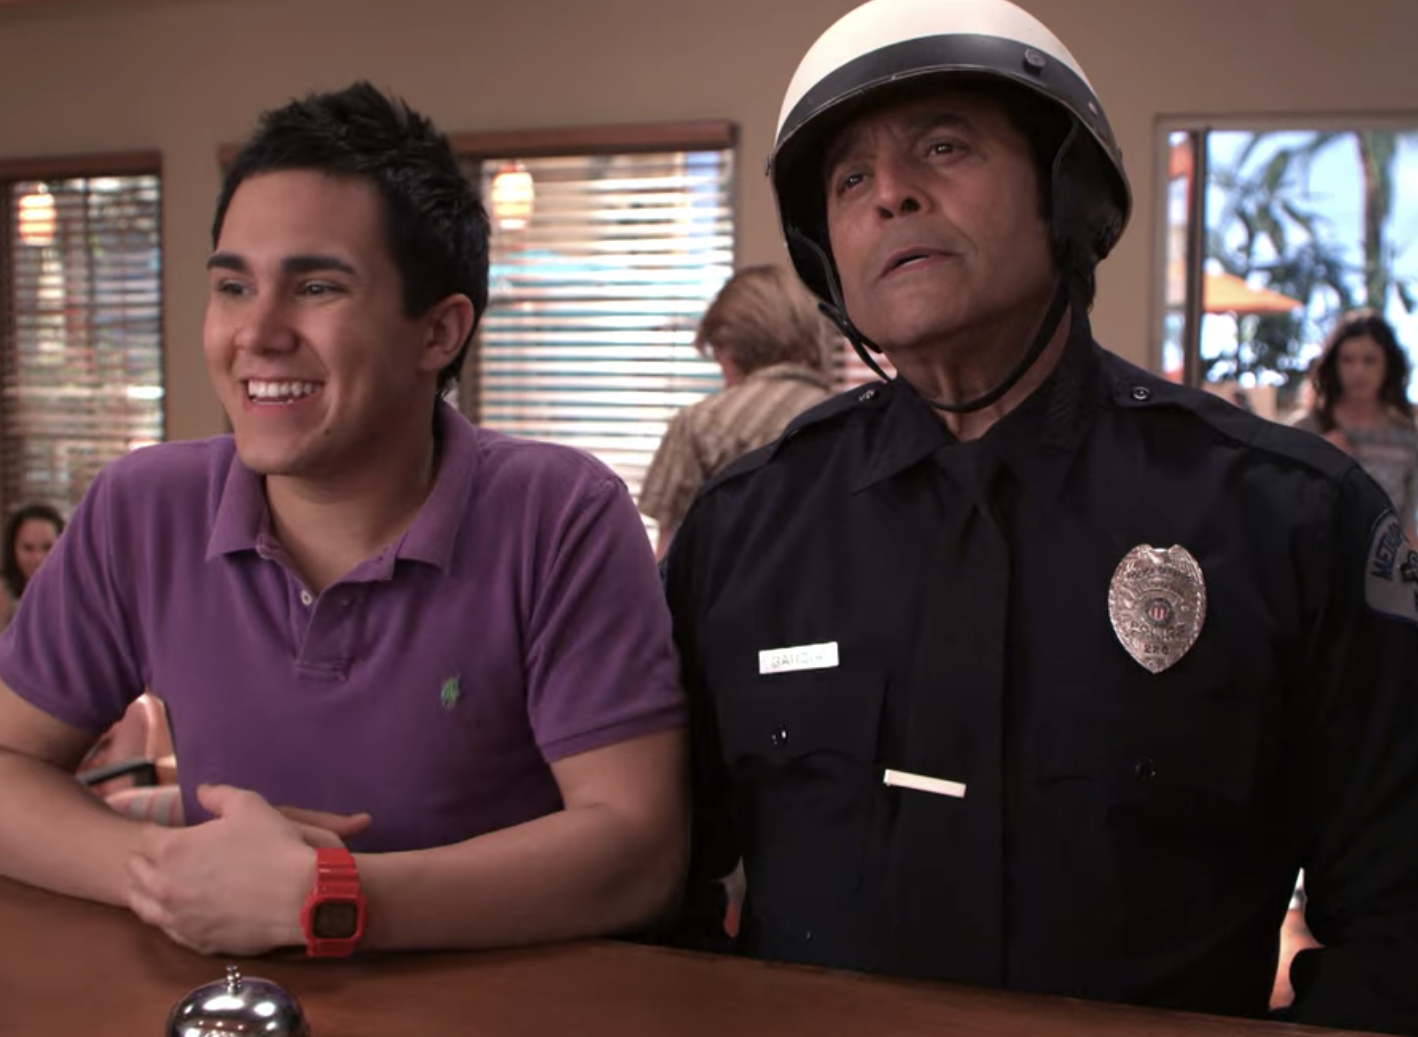 Erik Estrada wearing a police uniform and standing next to Carlos